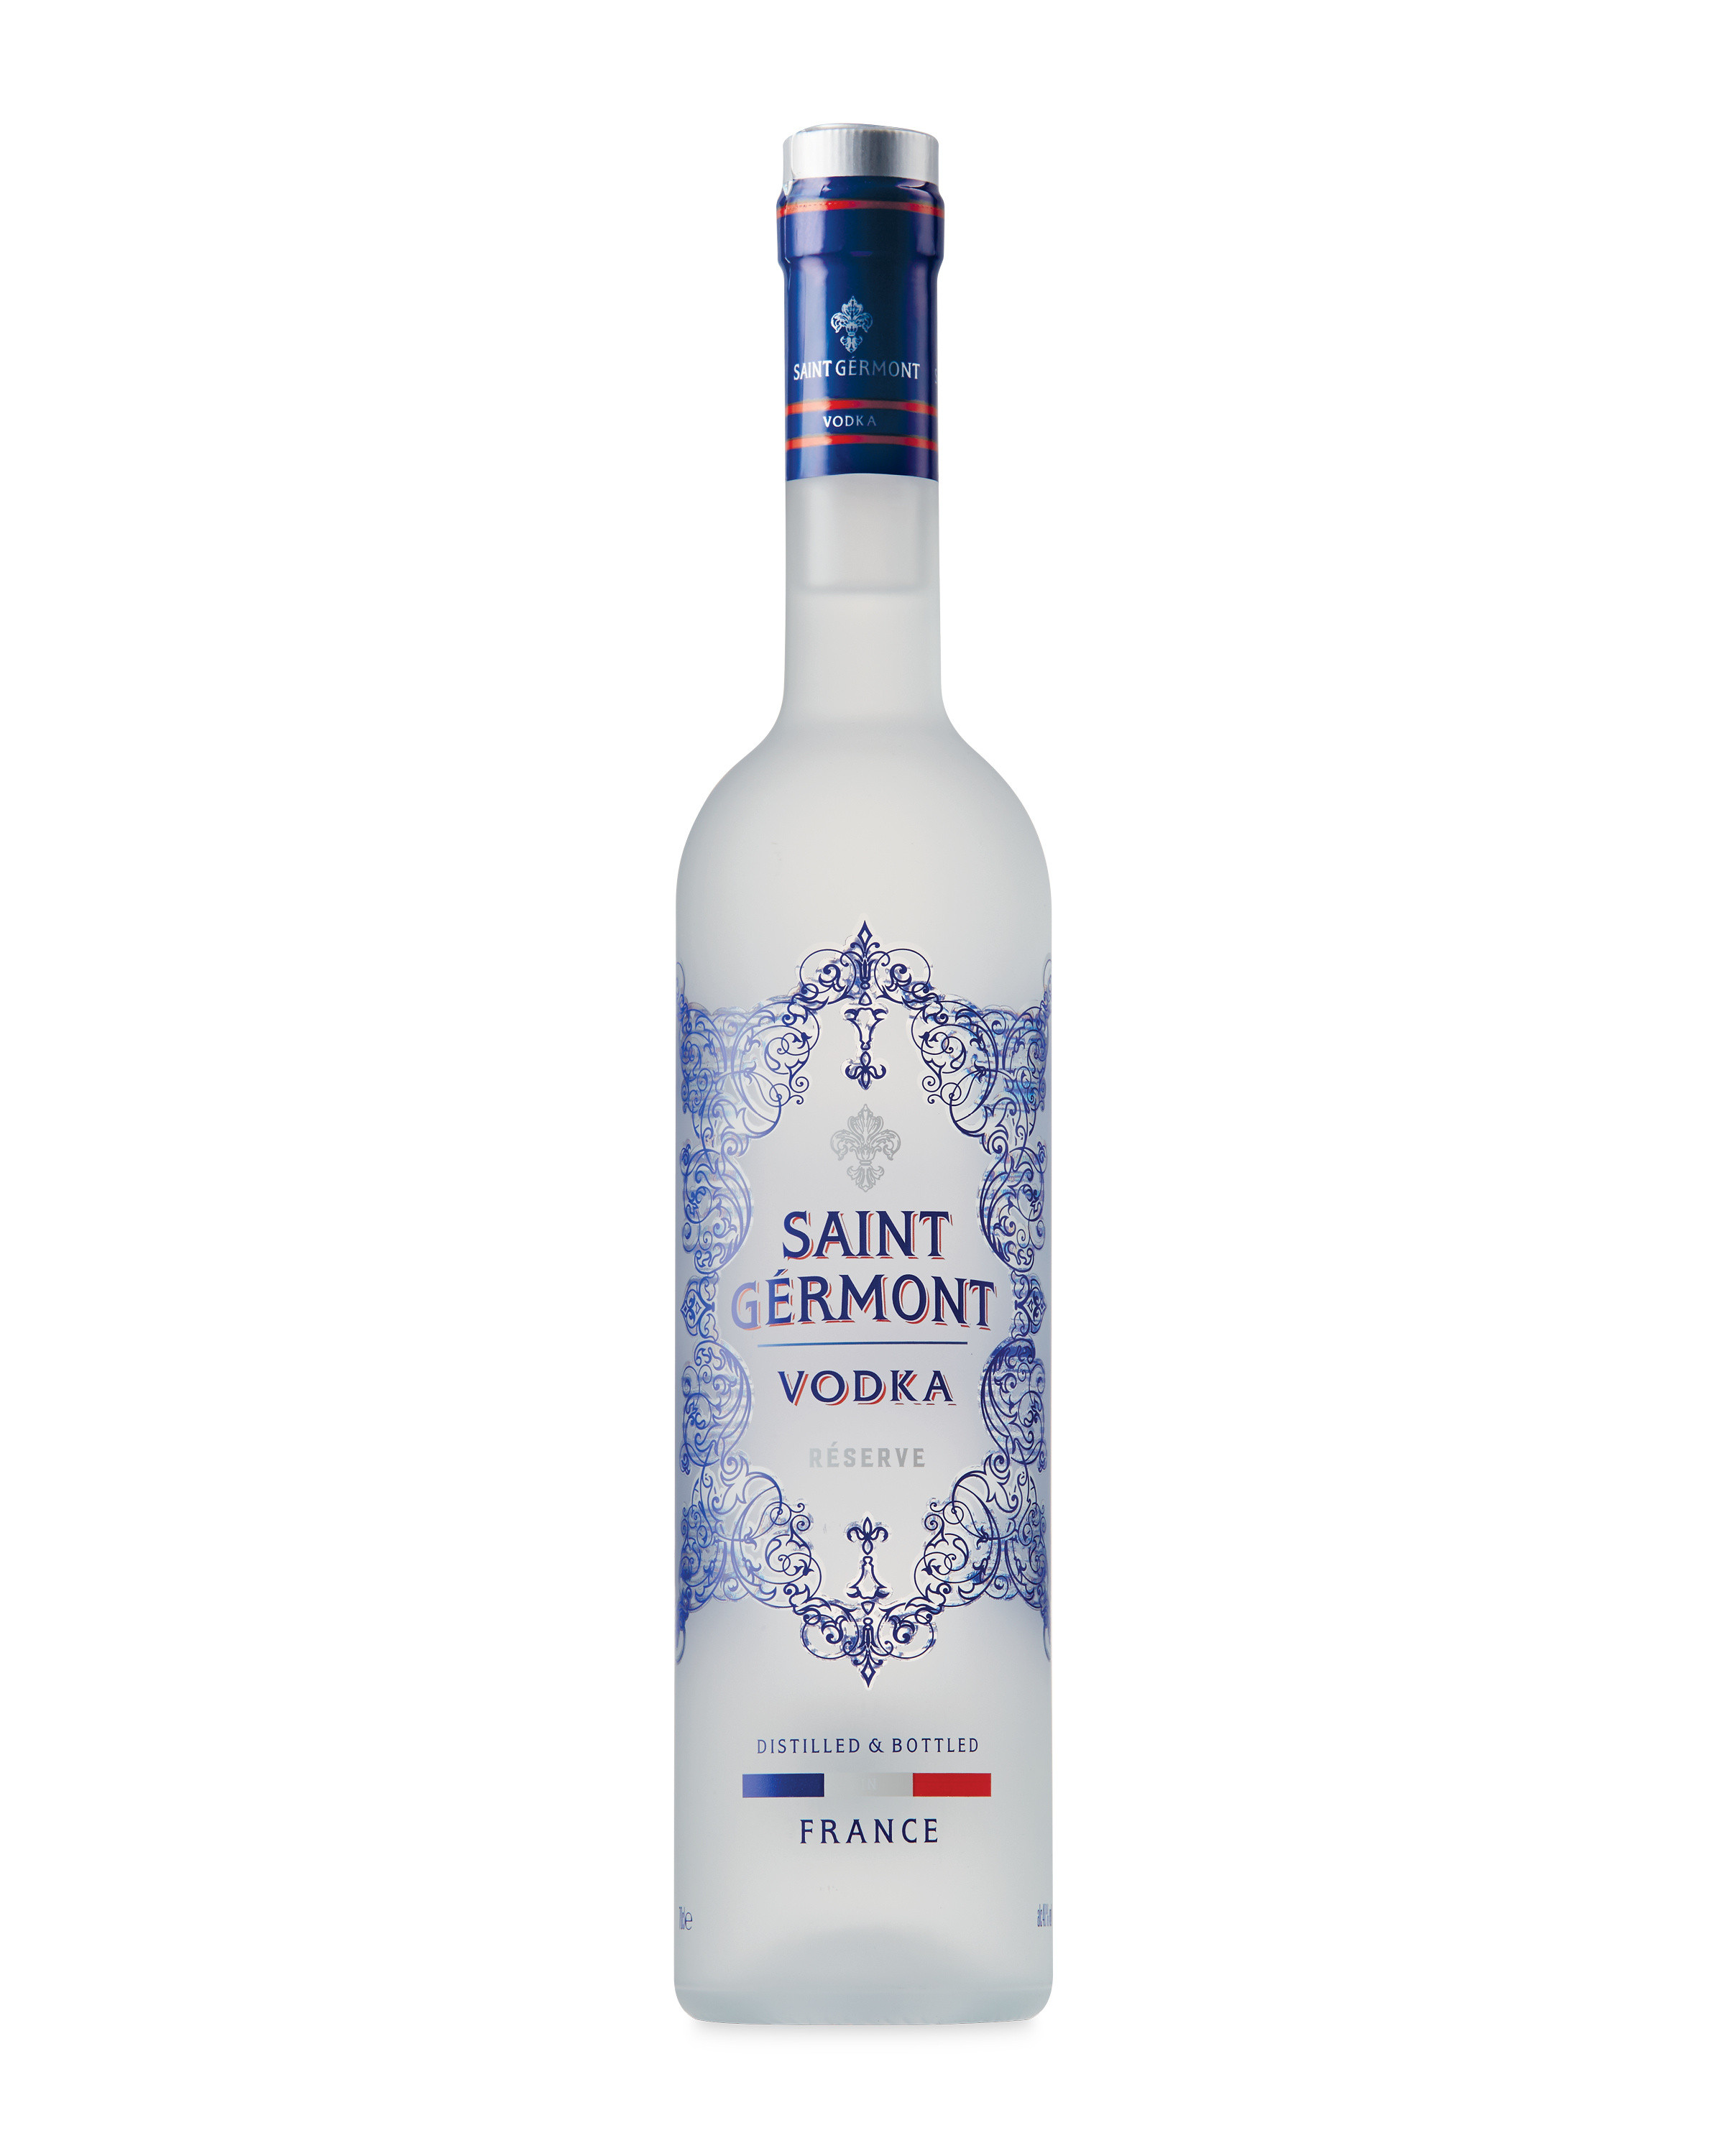 Premium French Vodka